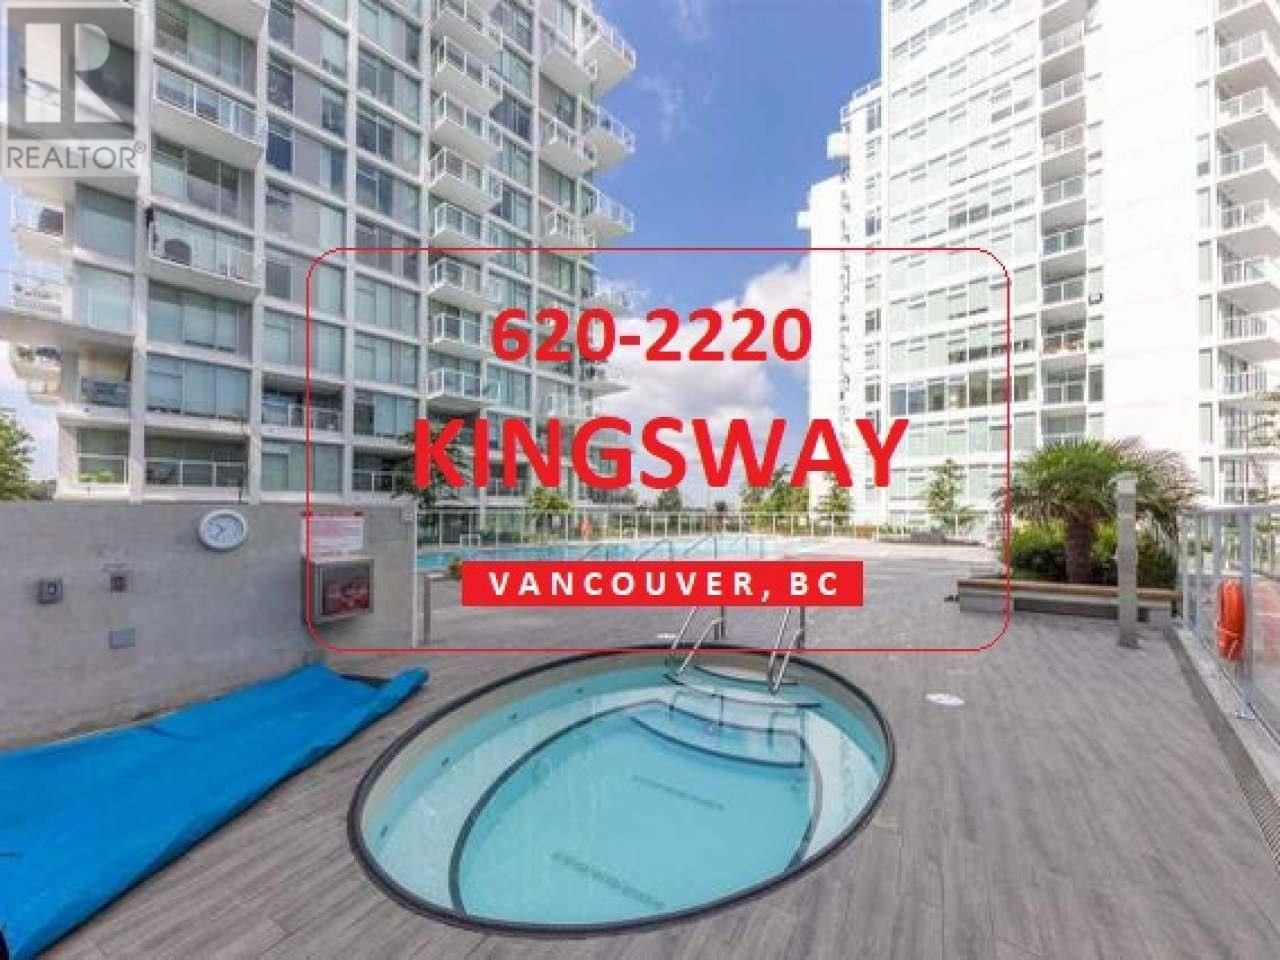 Main Photo: 620-2220 KINGSWAY in Out of Board Area: House for sale : MLS®# 15549